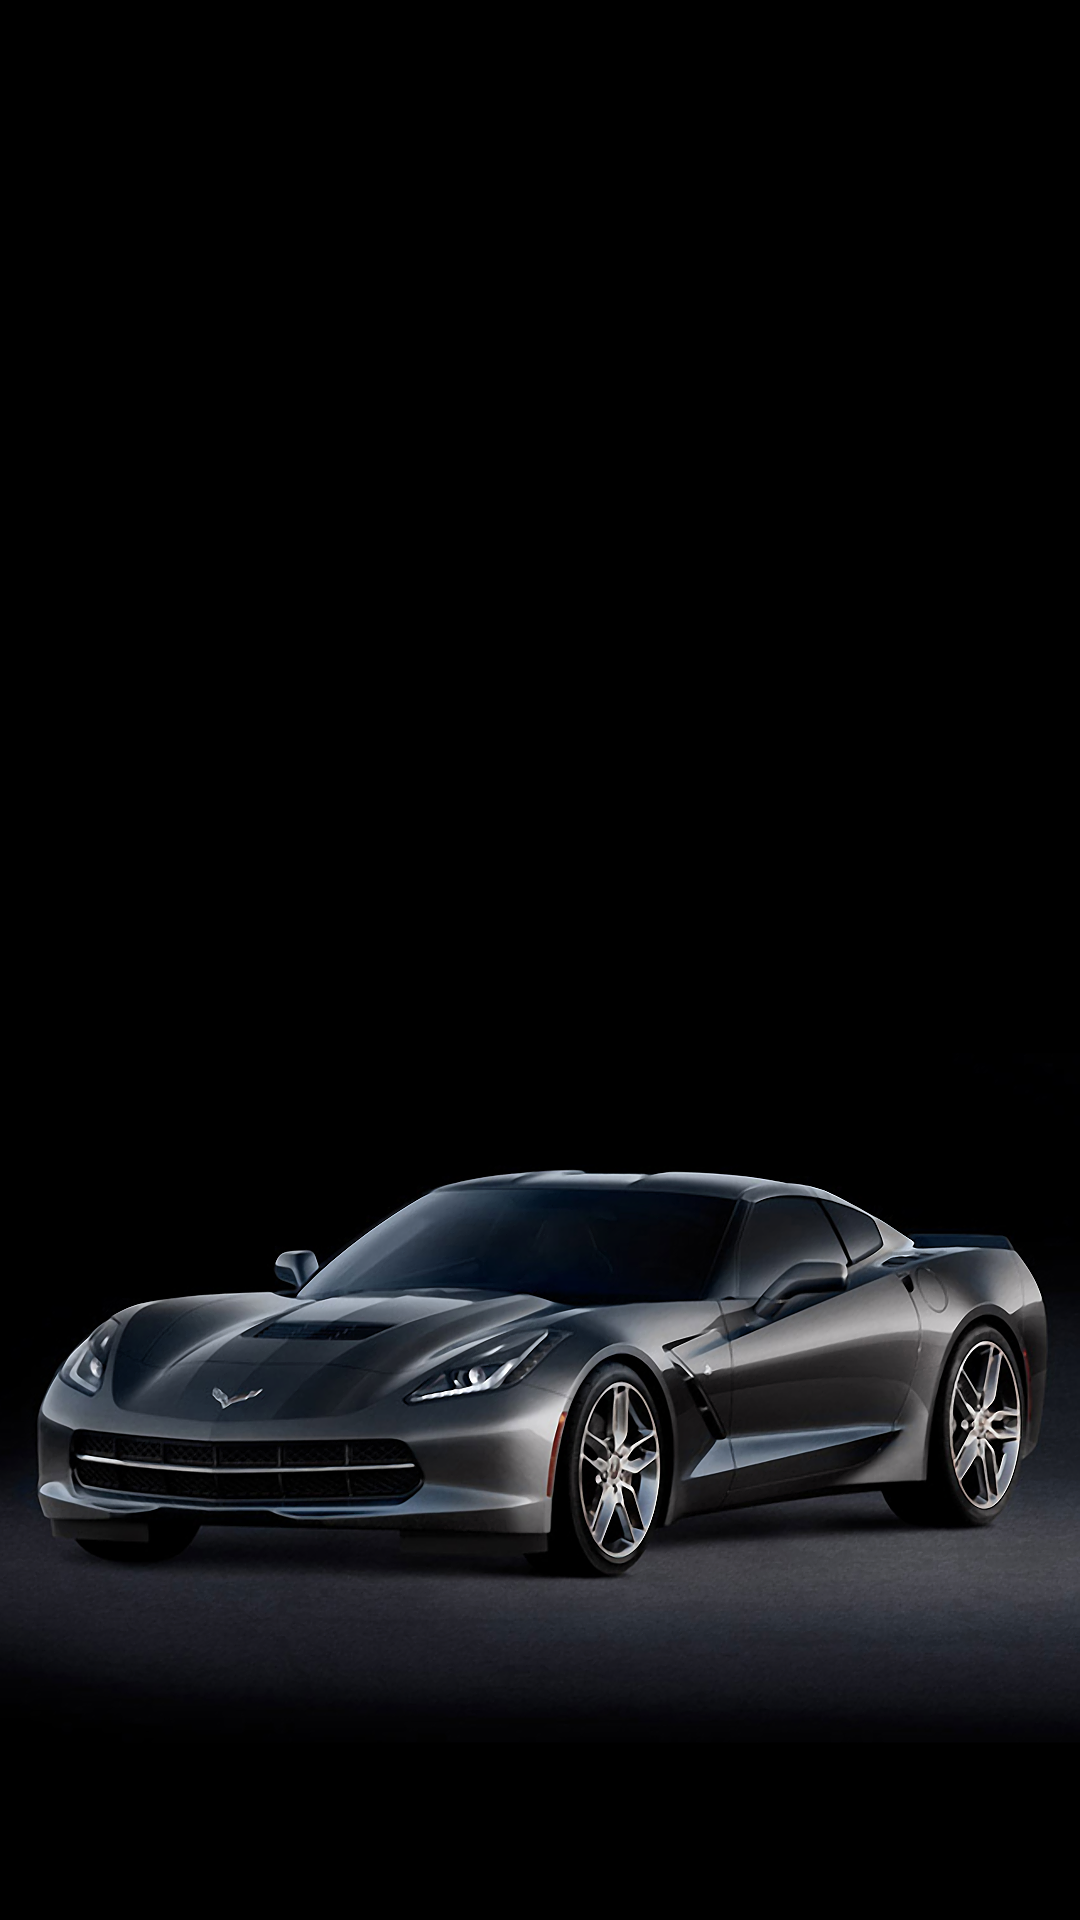 C7 Corvette Stingray Side iPhone 6 plus Wallpaper